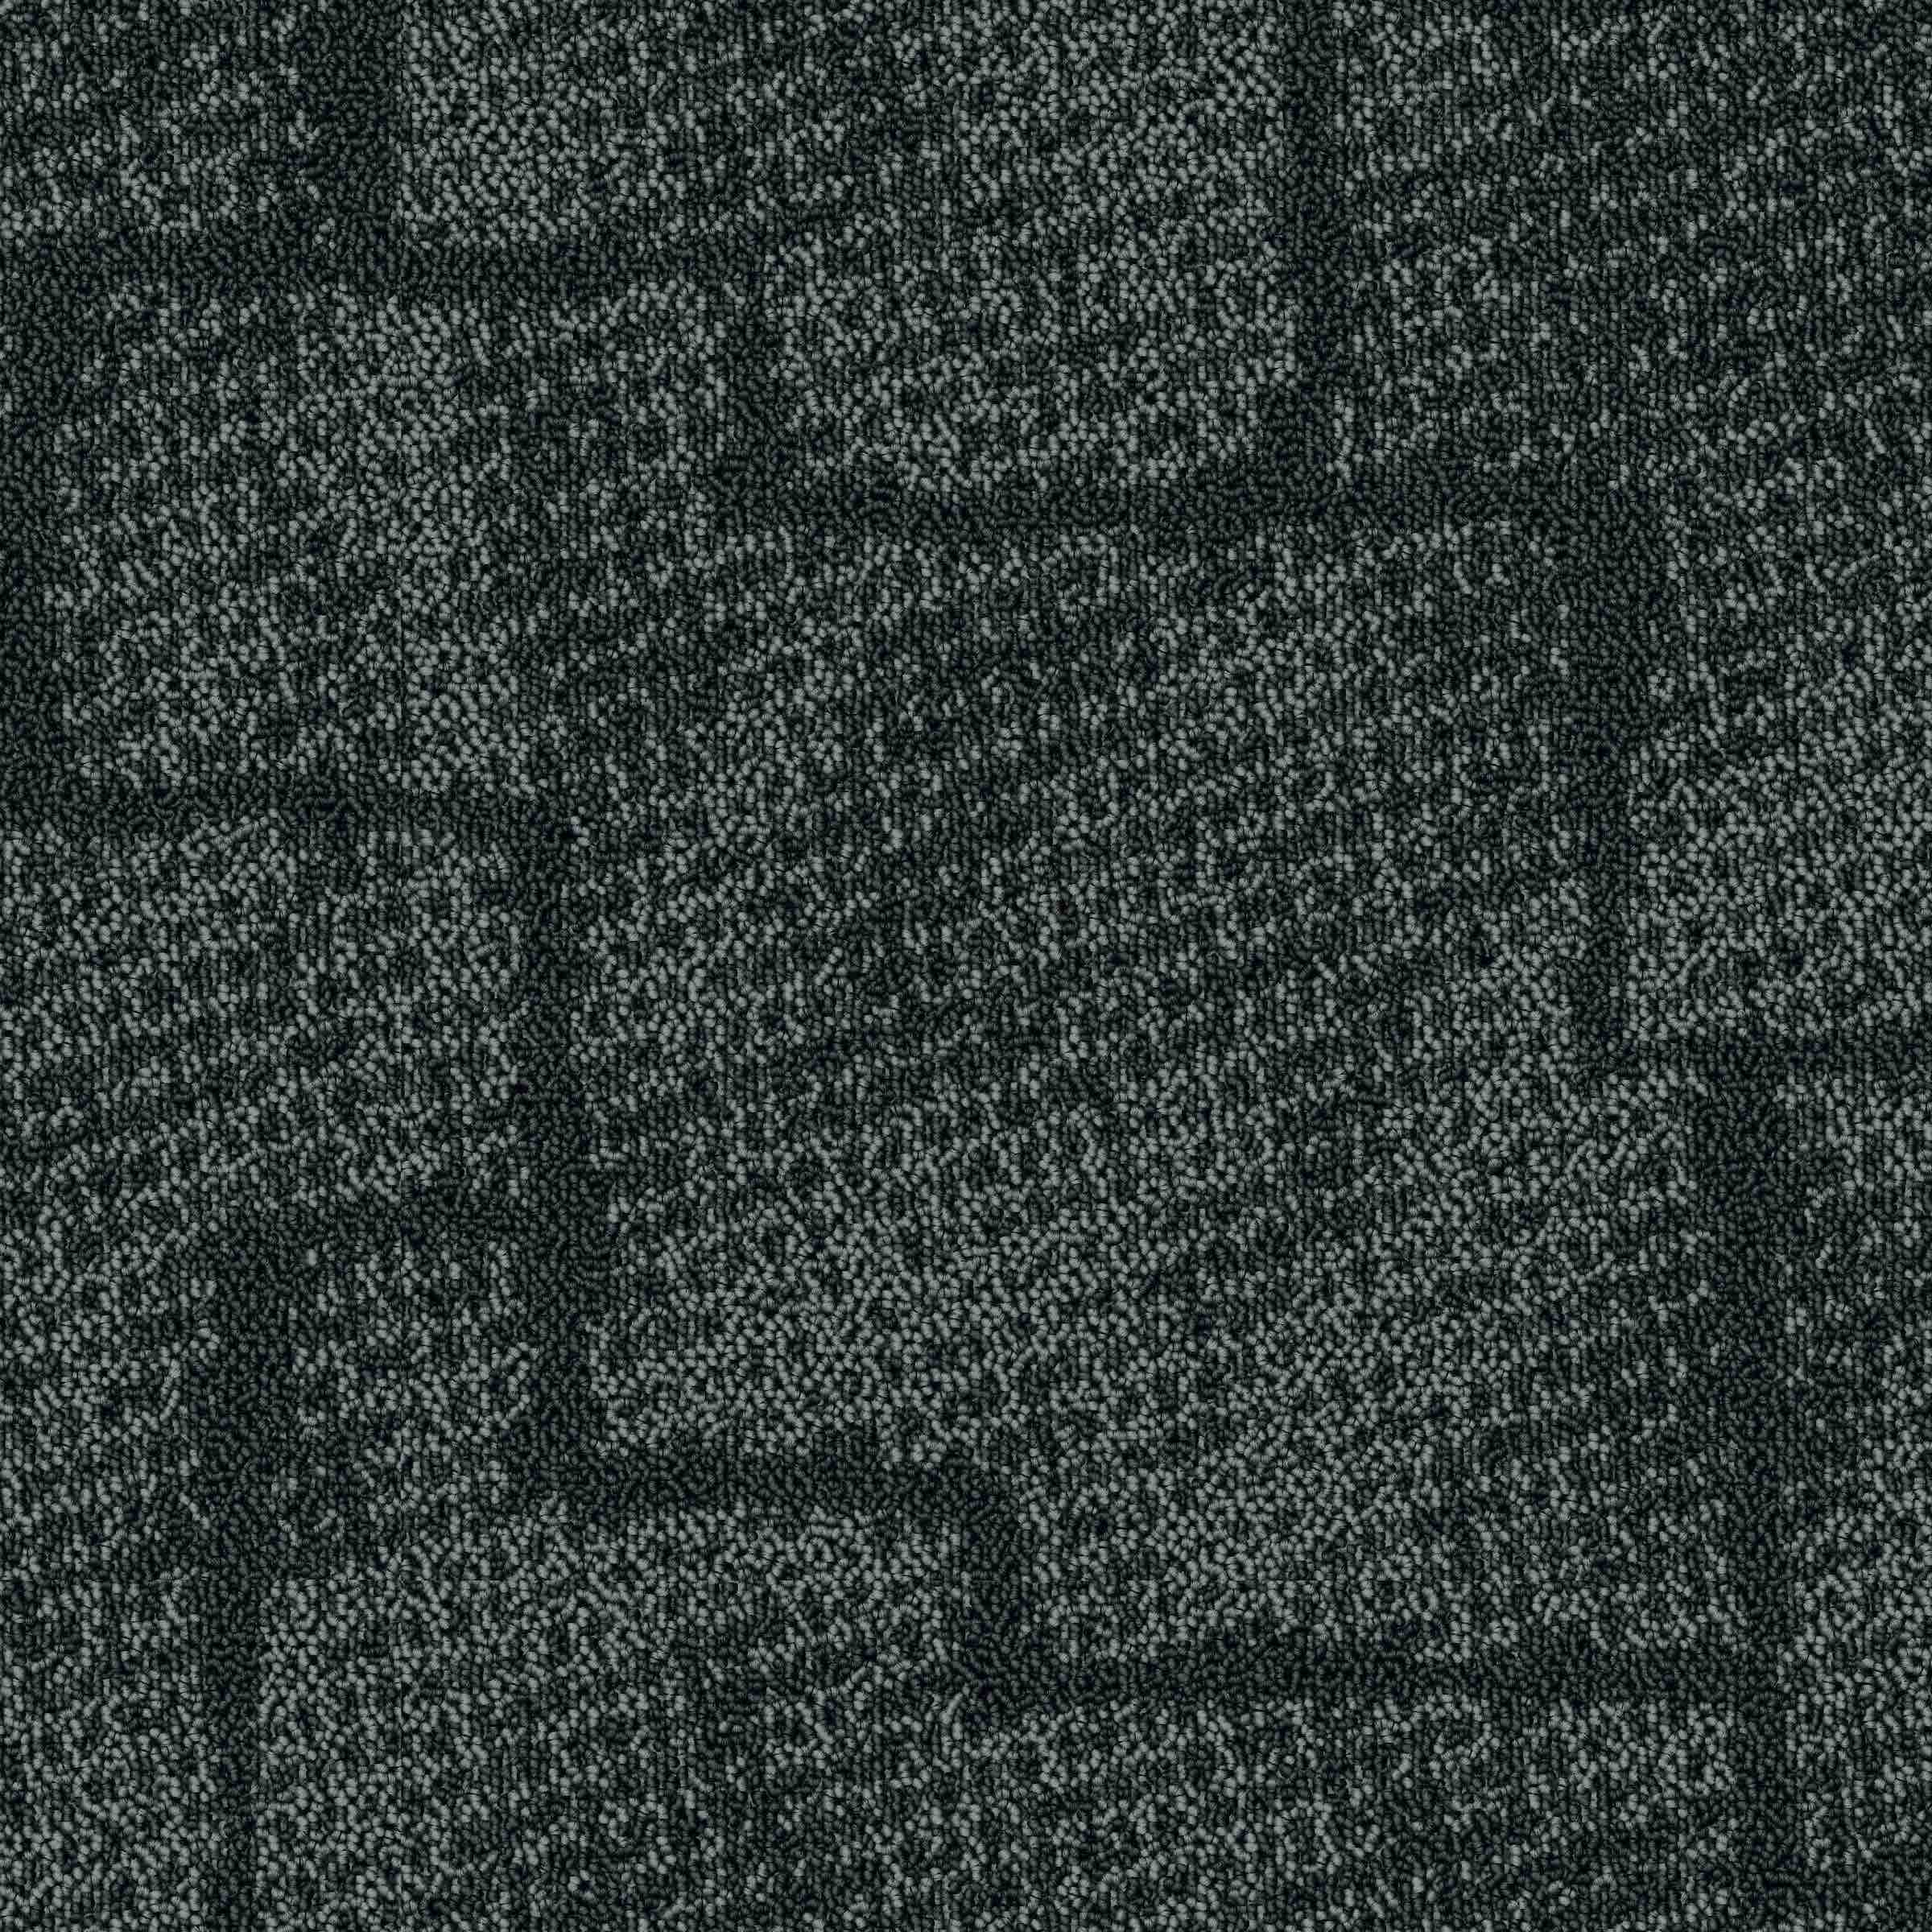 Mesh | Shadow Bone | Paragon Carpet Tiles | Commercial Carpet Tiles